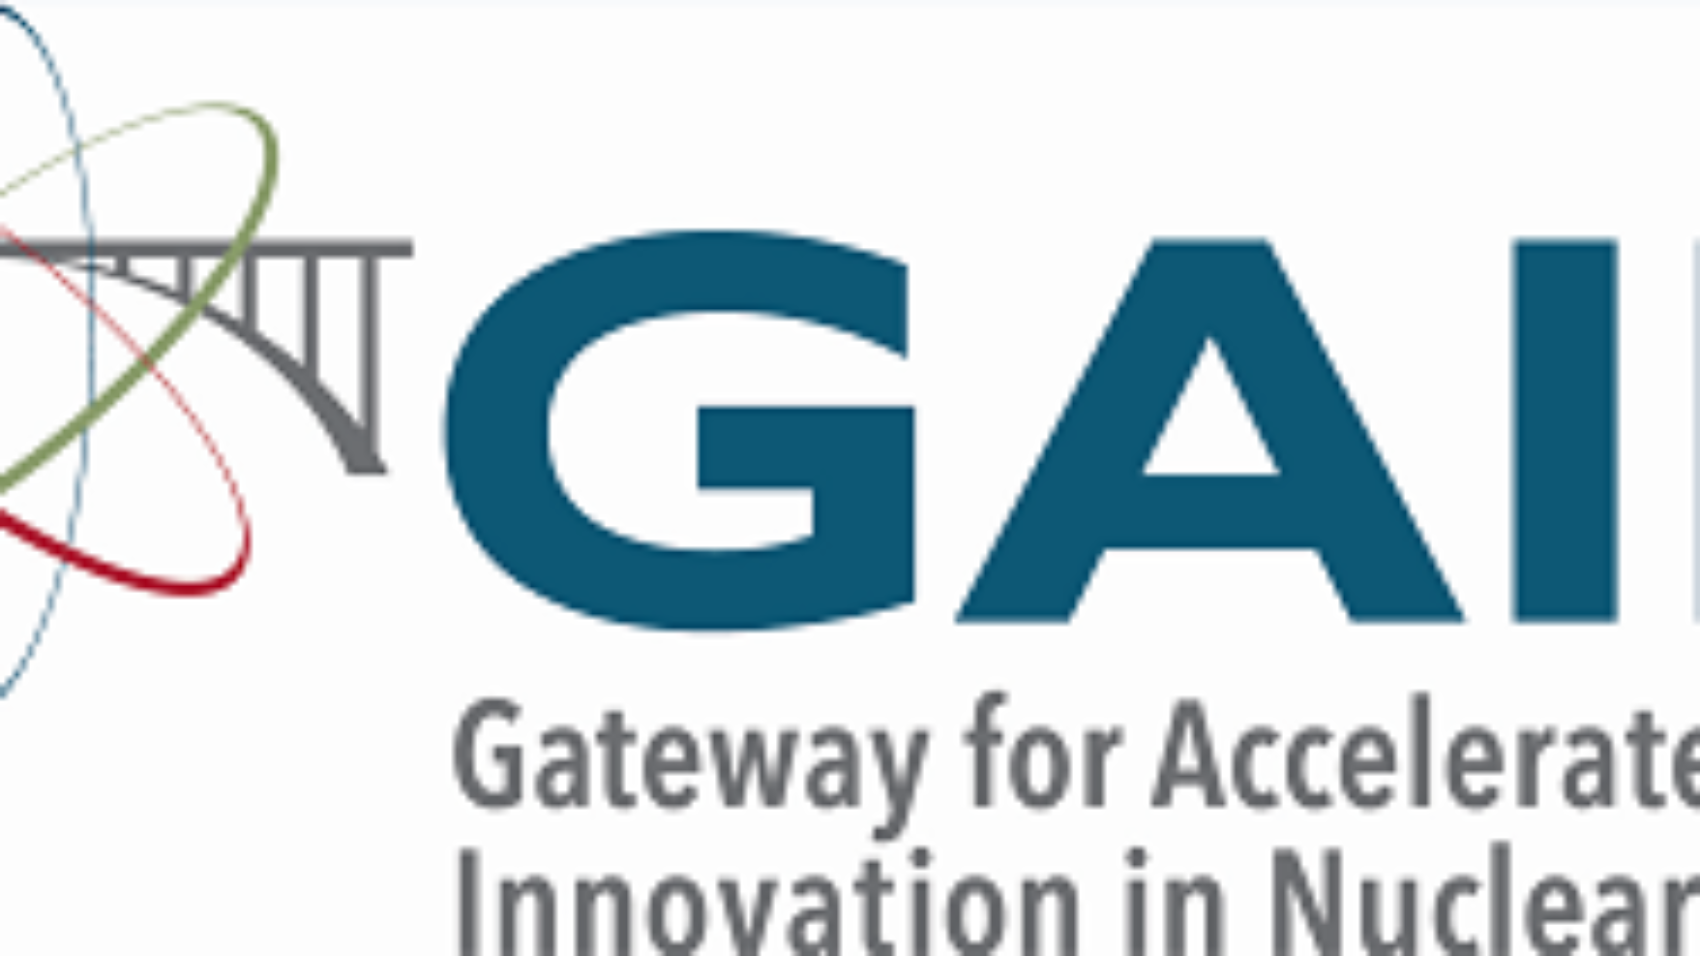 Gateway for Accelerated Innovation in Nuclear Logo